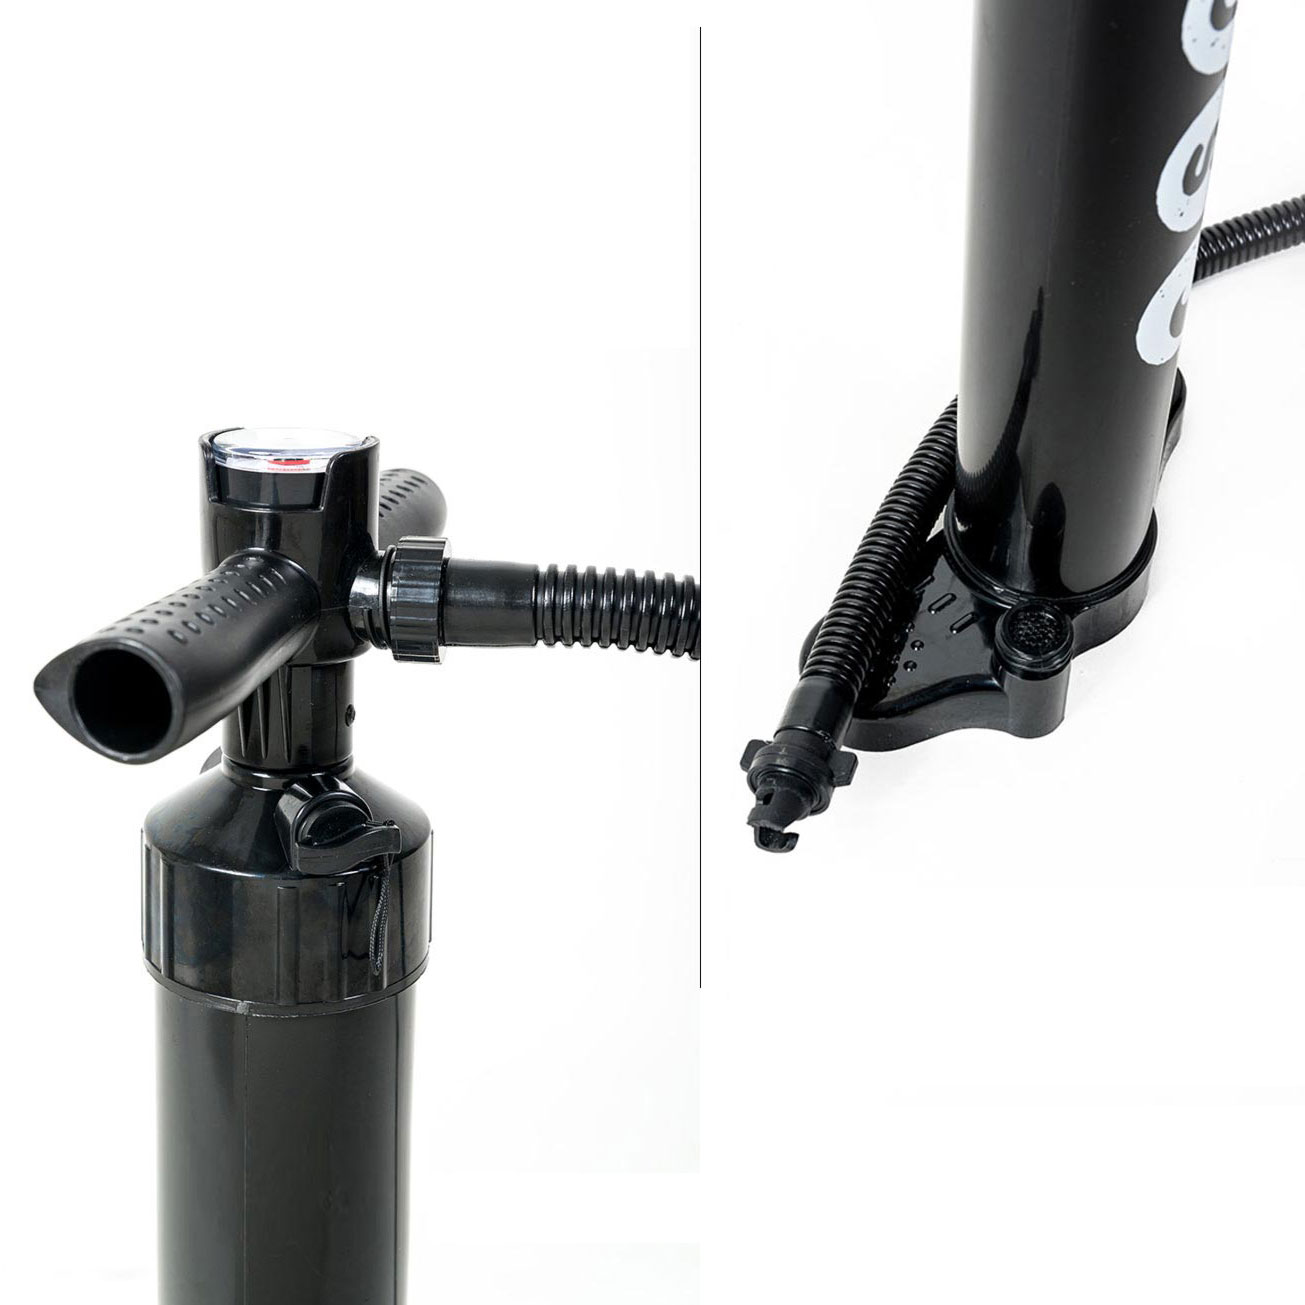 Pump included in the inflatable SUP package